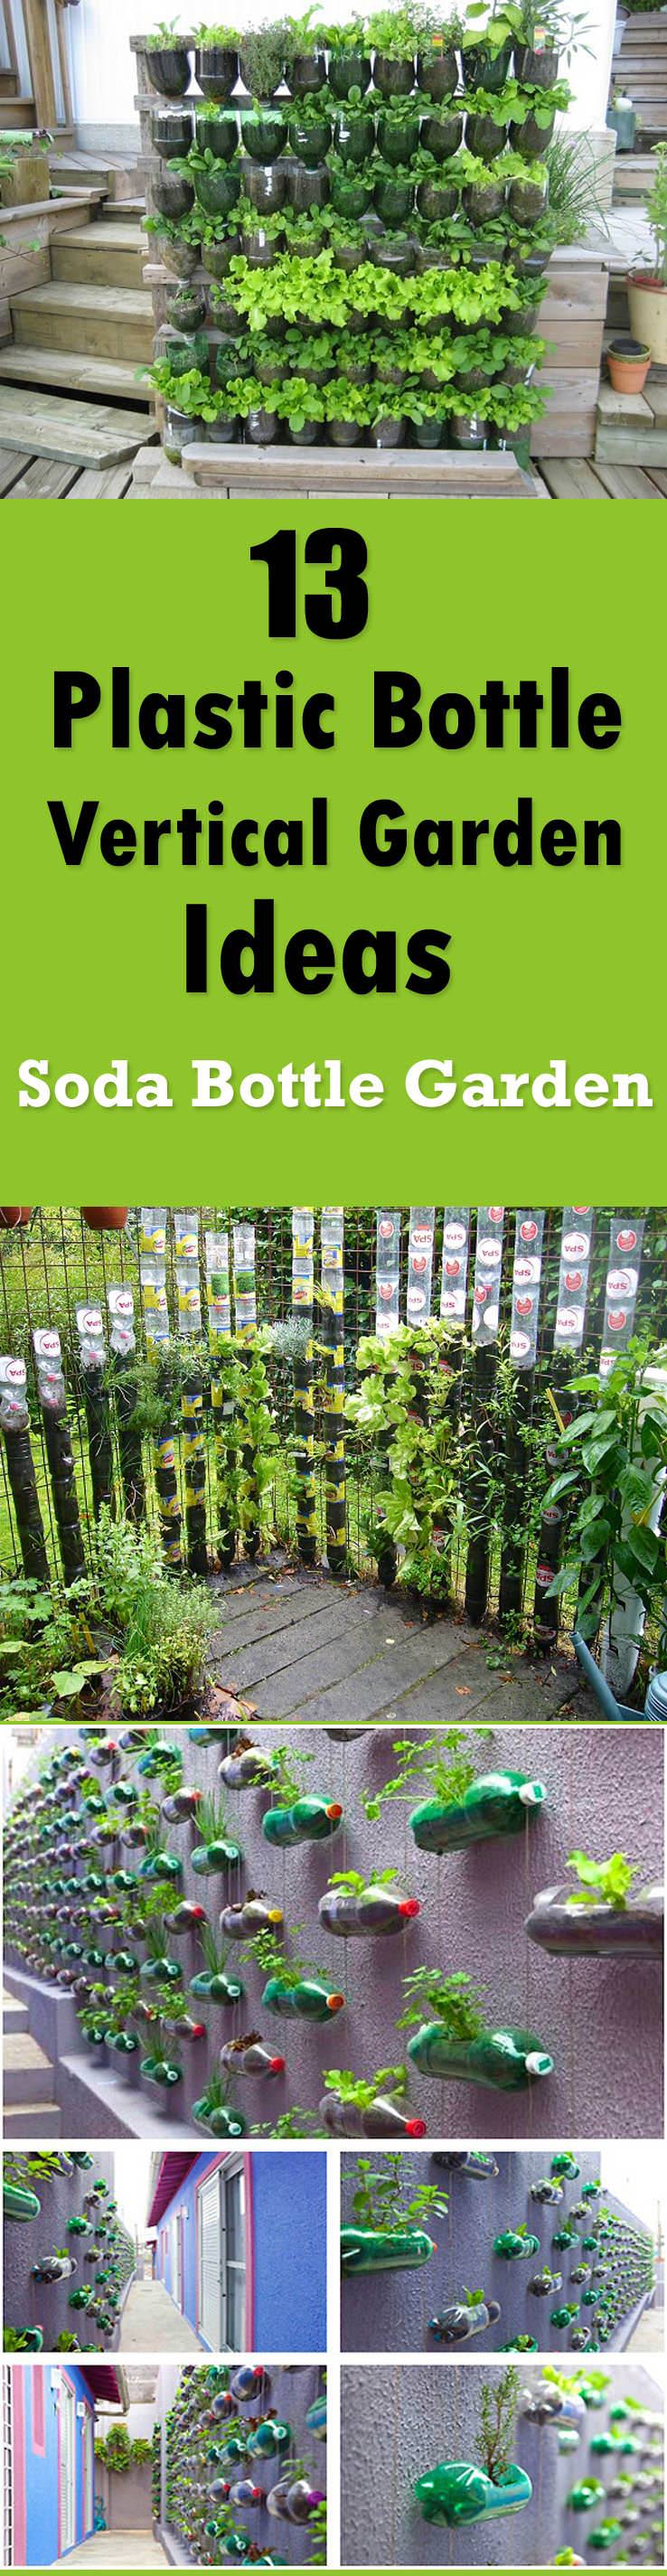 13 plastic bottle vertical garden ideas soda bottle garden plastic bottle verticle garden ideas workwithnaturefo